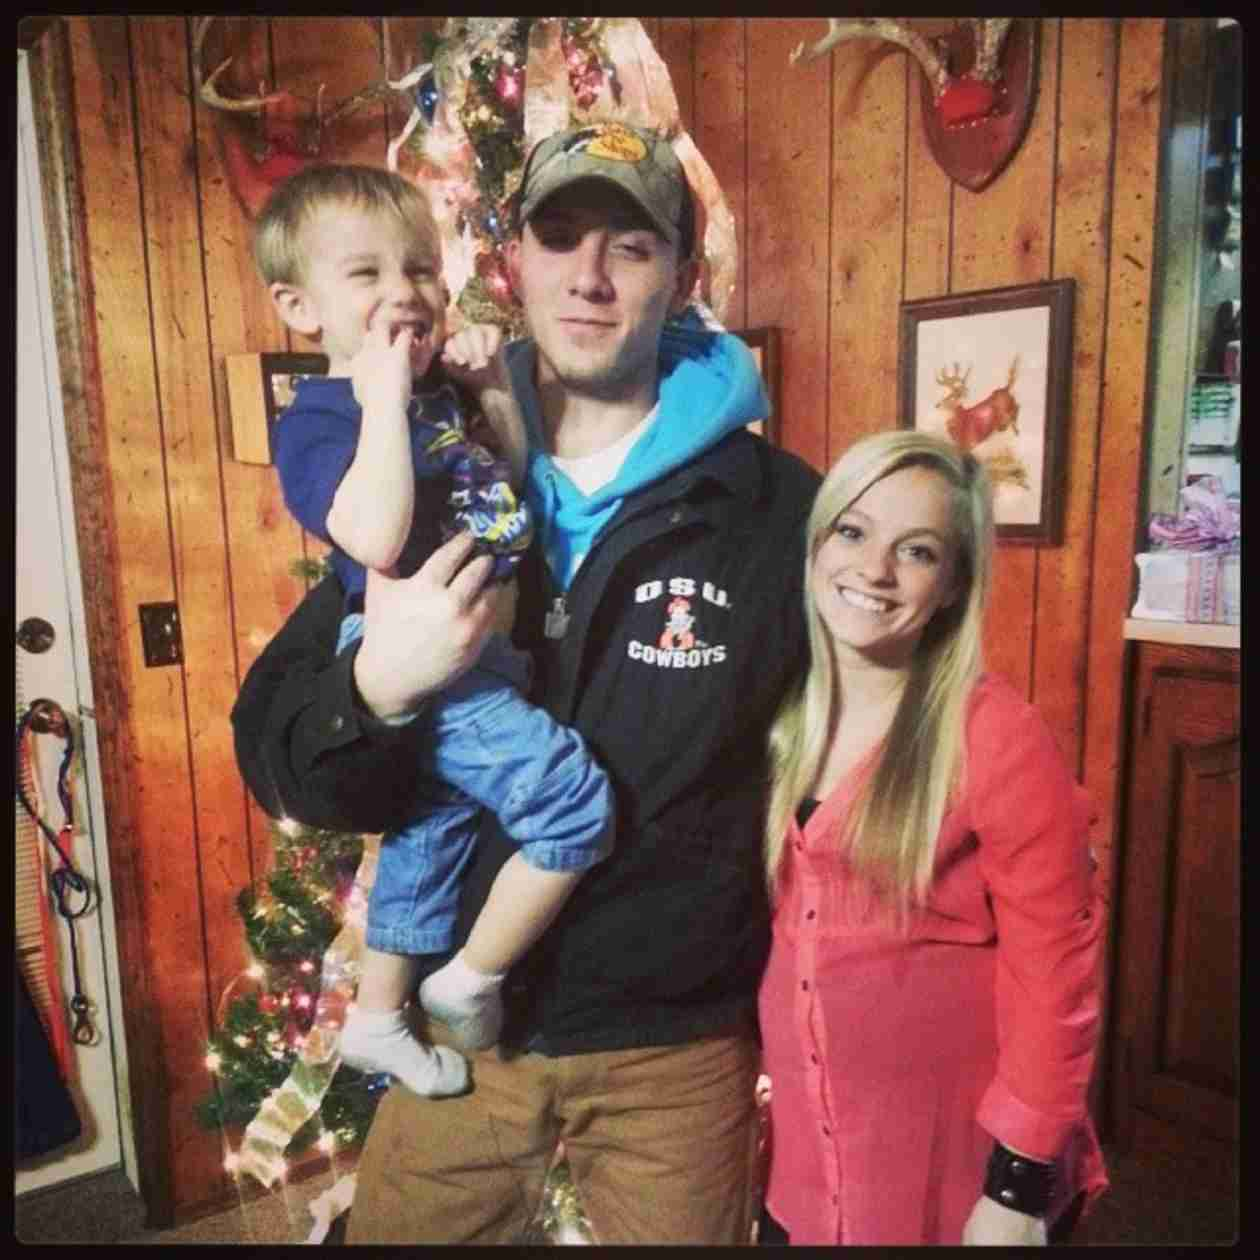 Mackenzie Douthit Shares a Family Portrait — See How Big Gannon and Jaxie Are! (PHOTO)